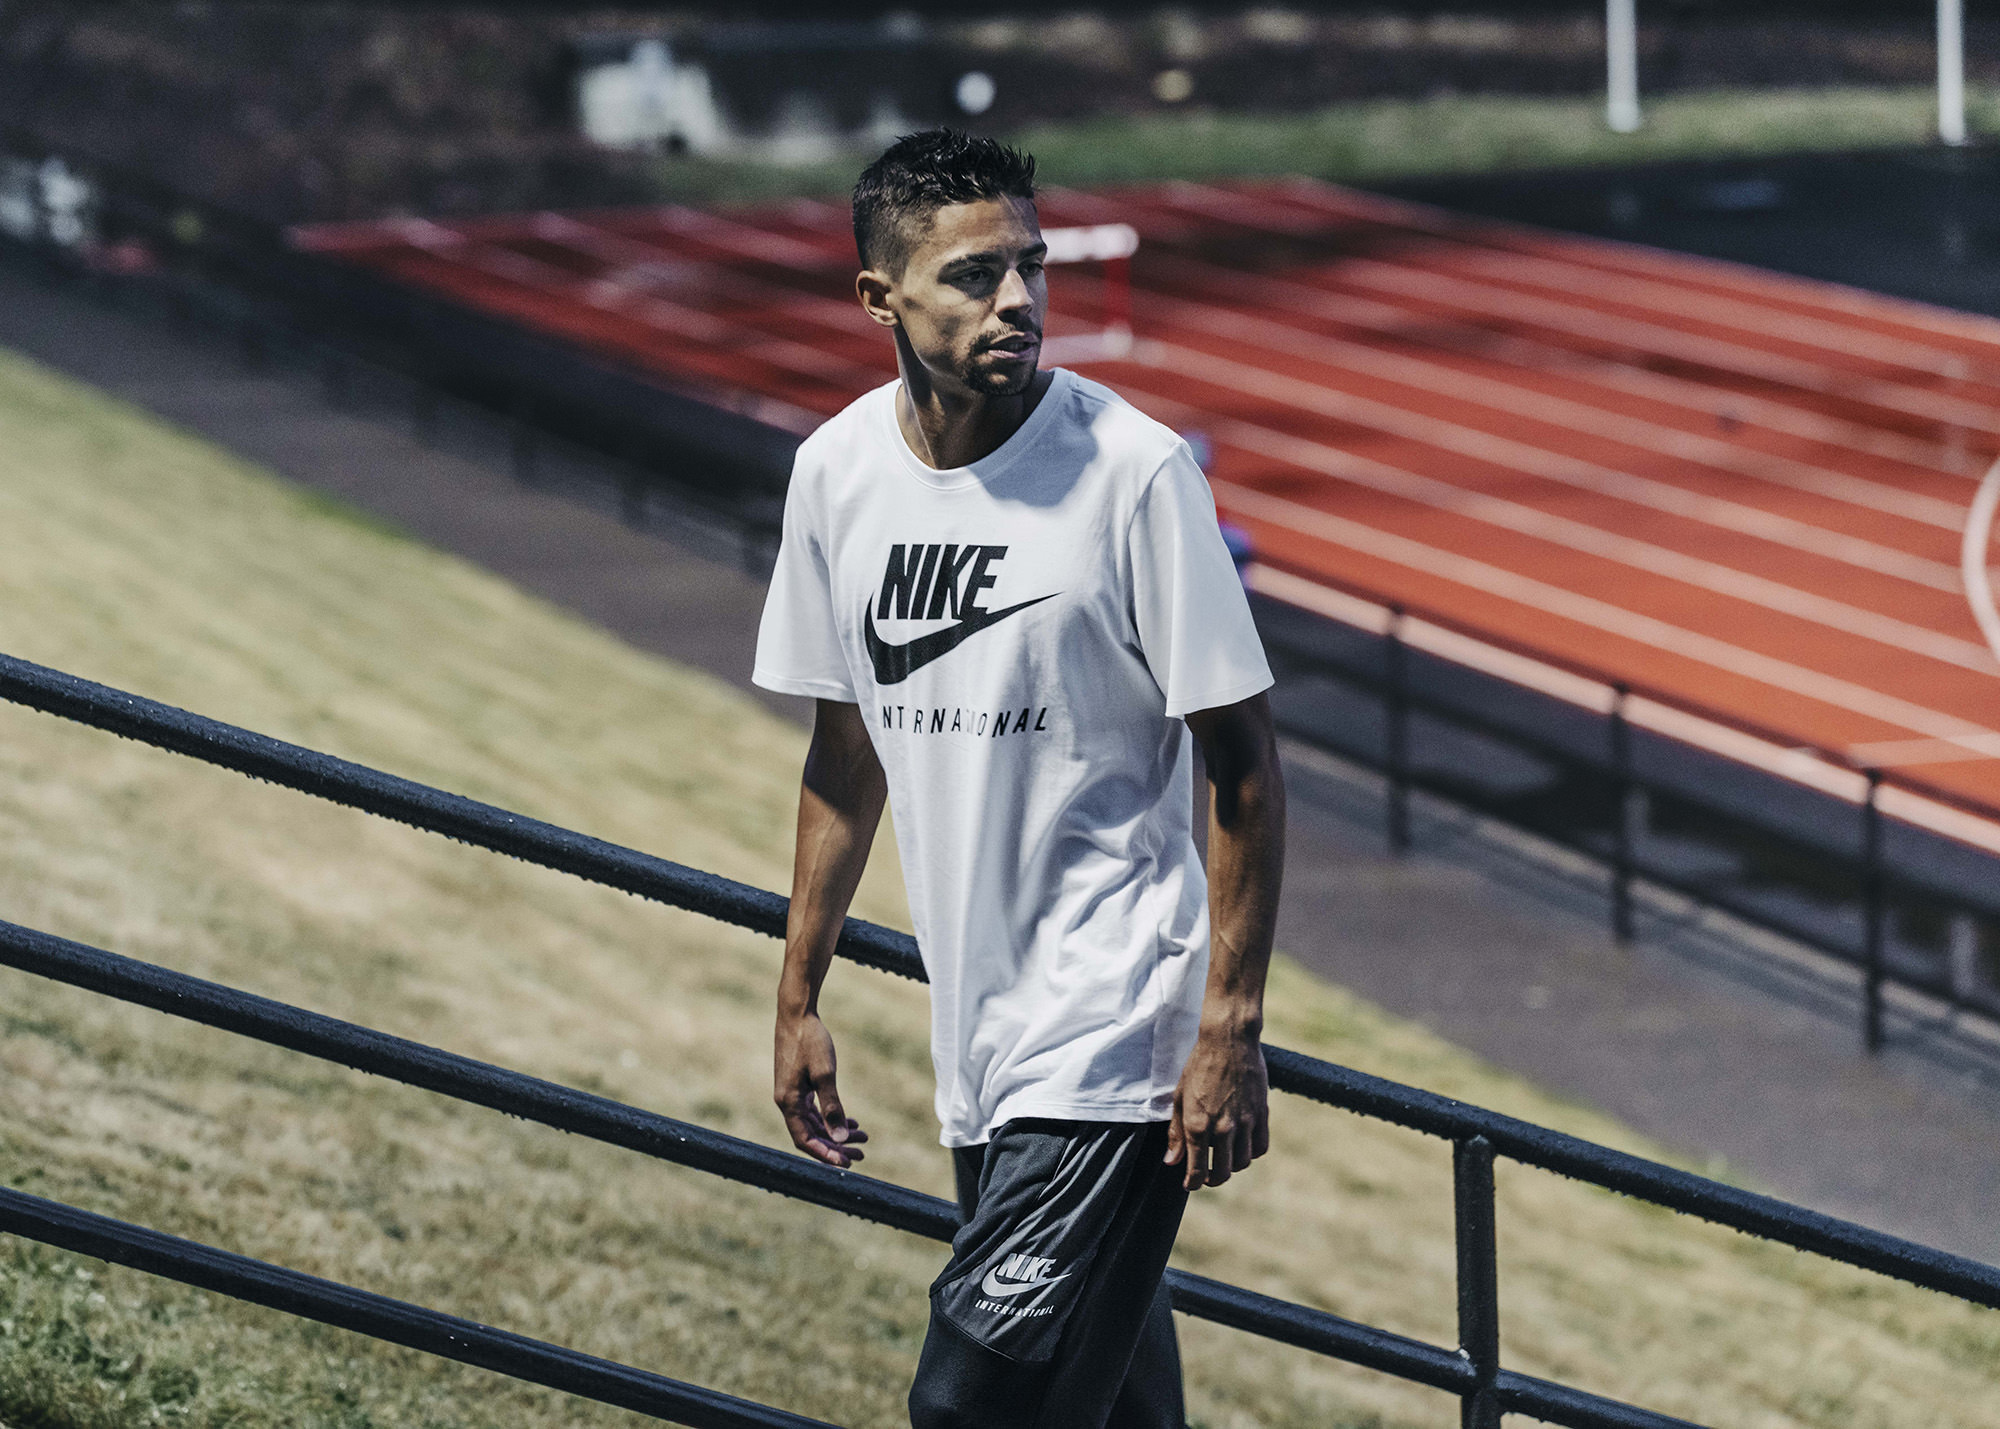 5774b7da6d4678a922085152_Nike_International_Matt_Centrowitz3_original